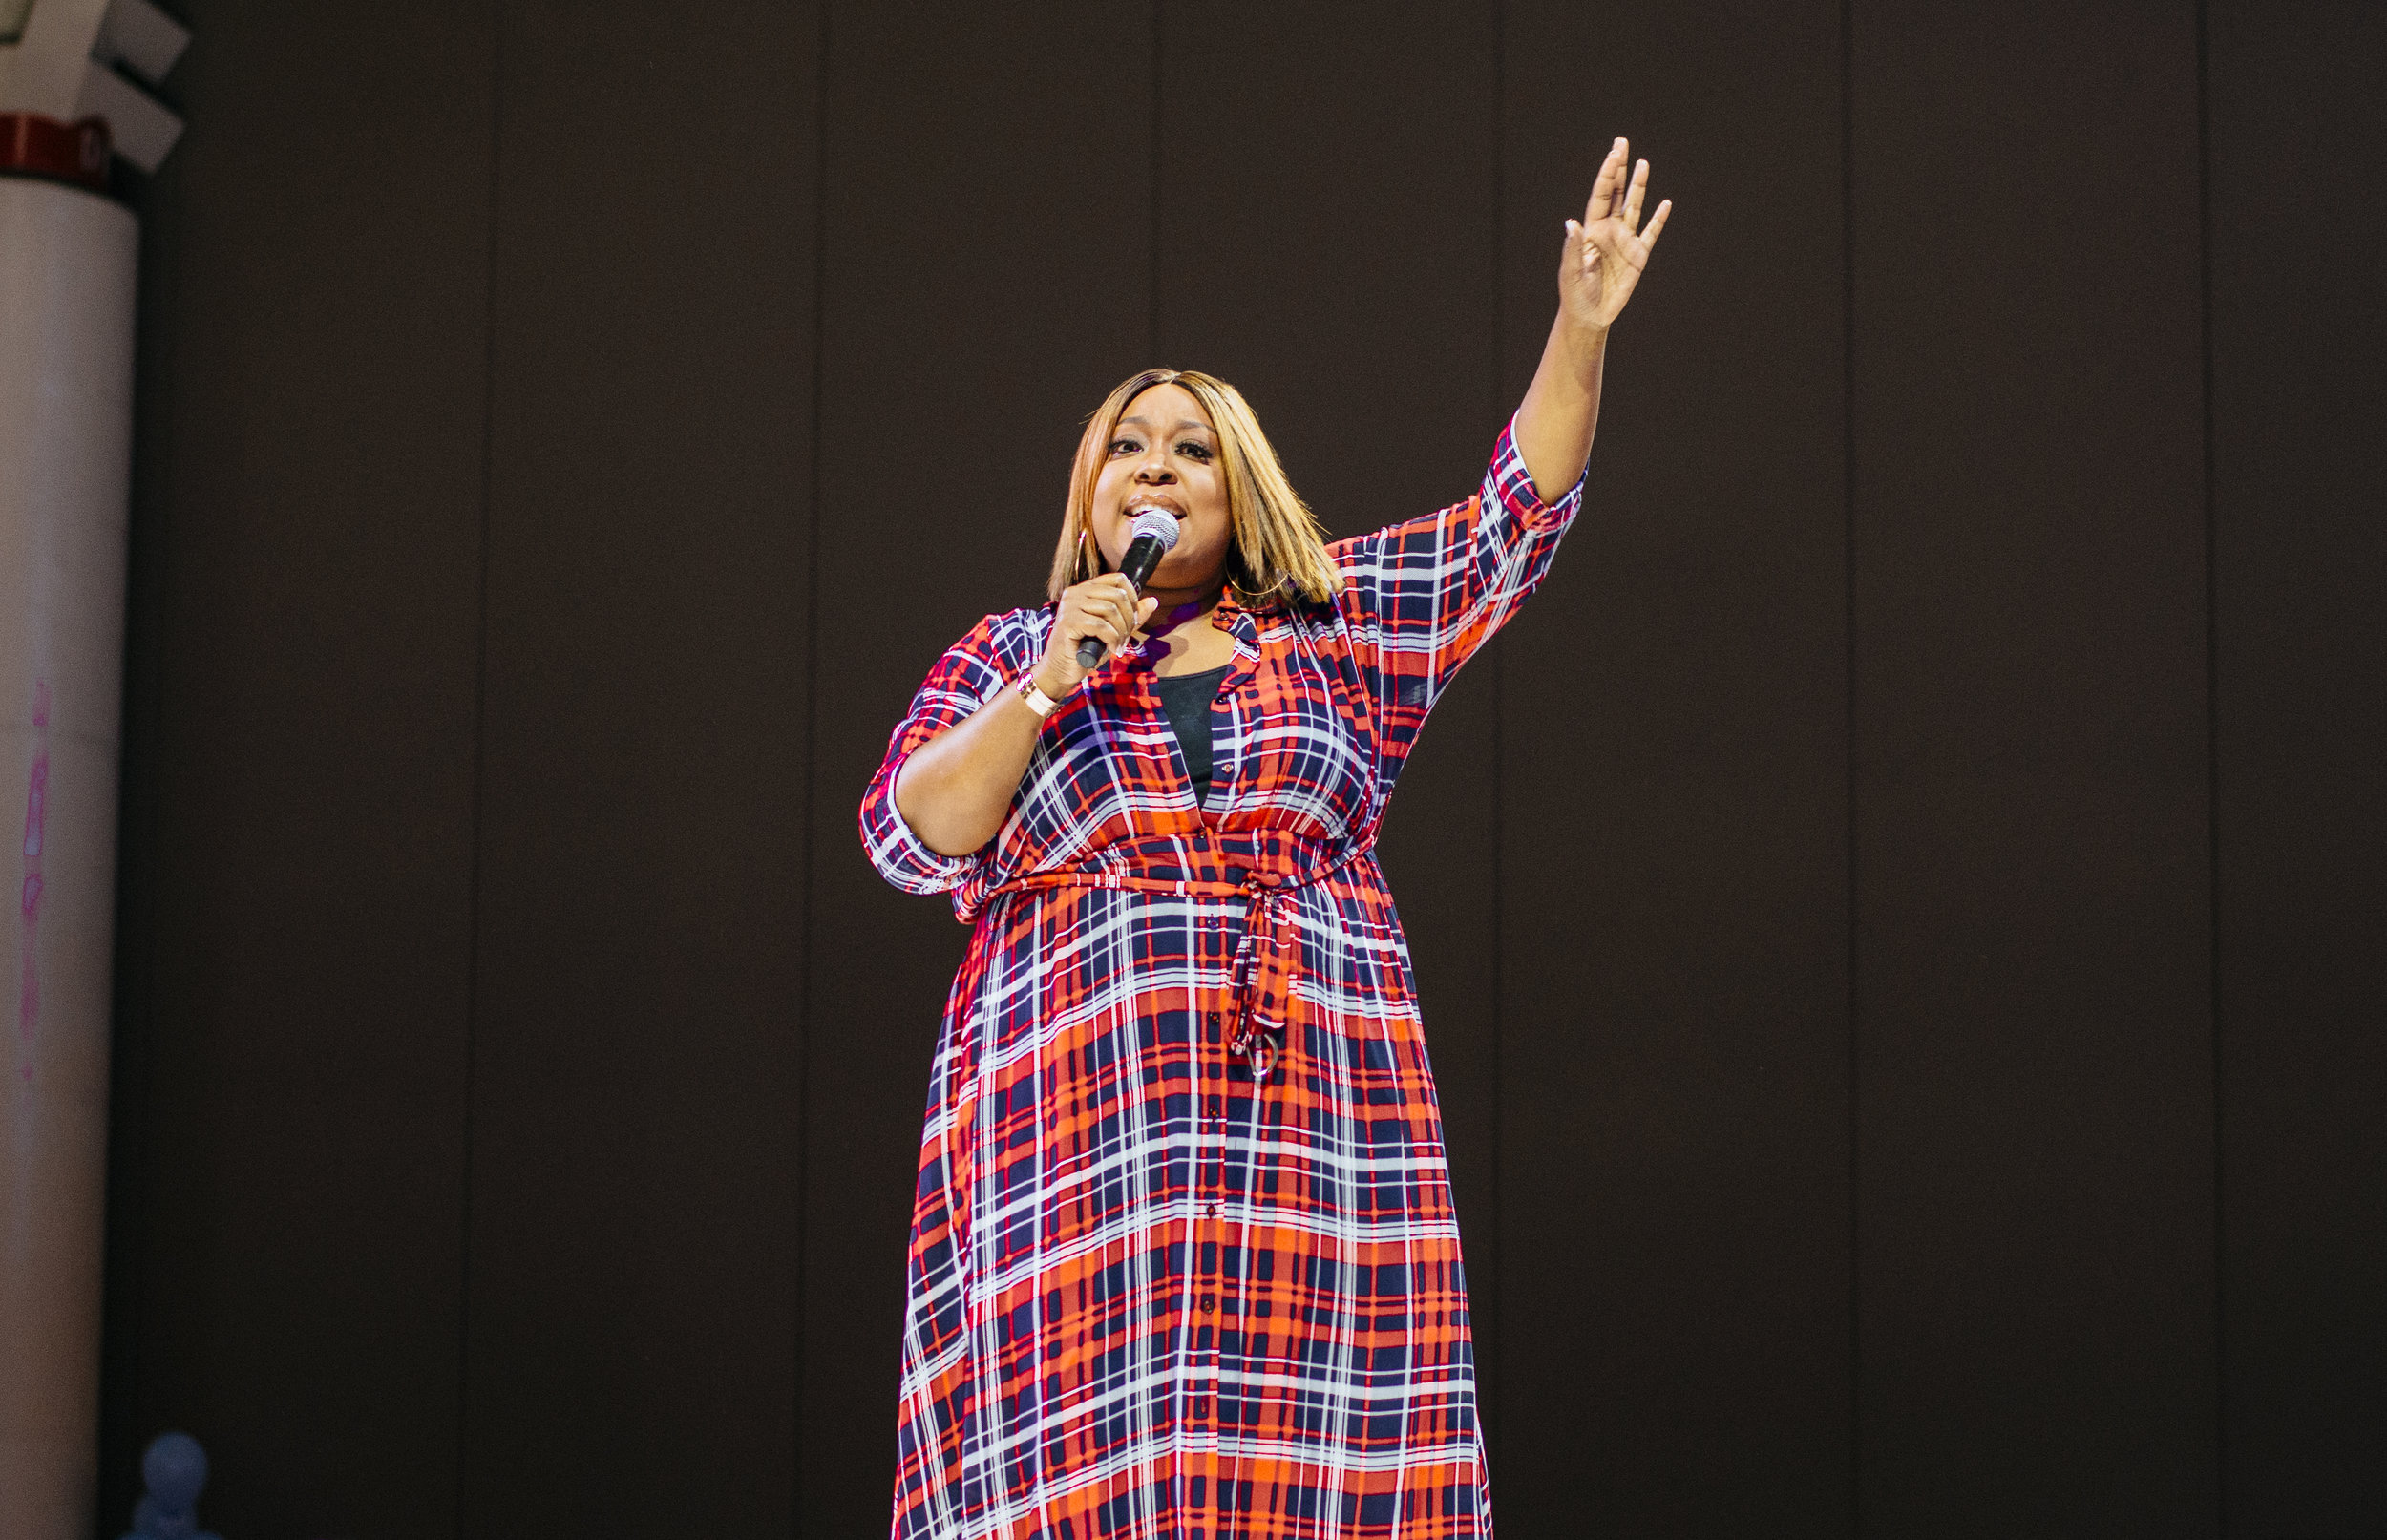 Loni Love waving to the crowd as she introduces the next act.